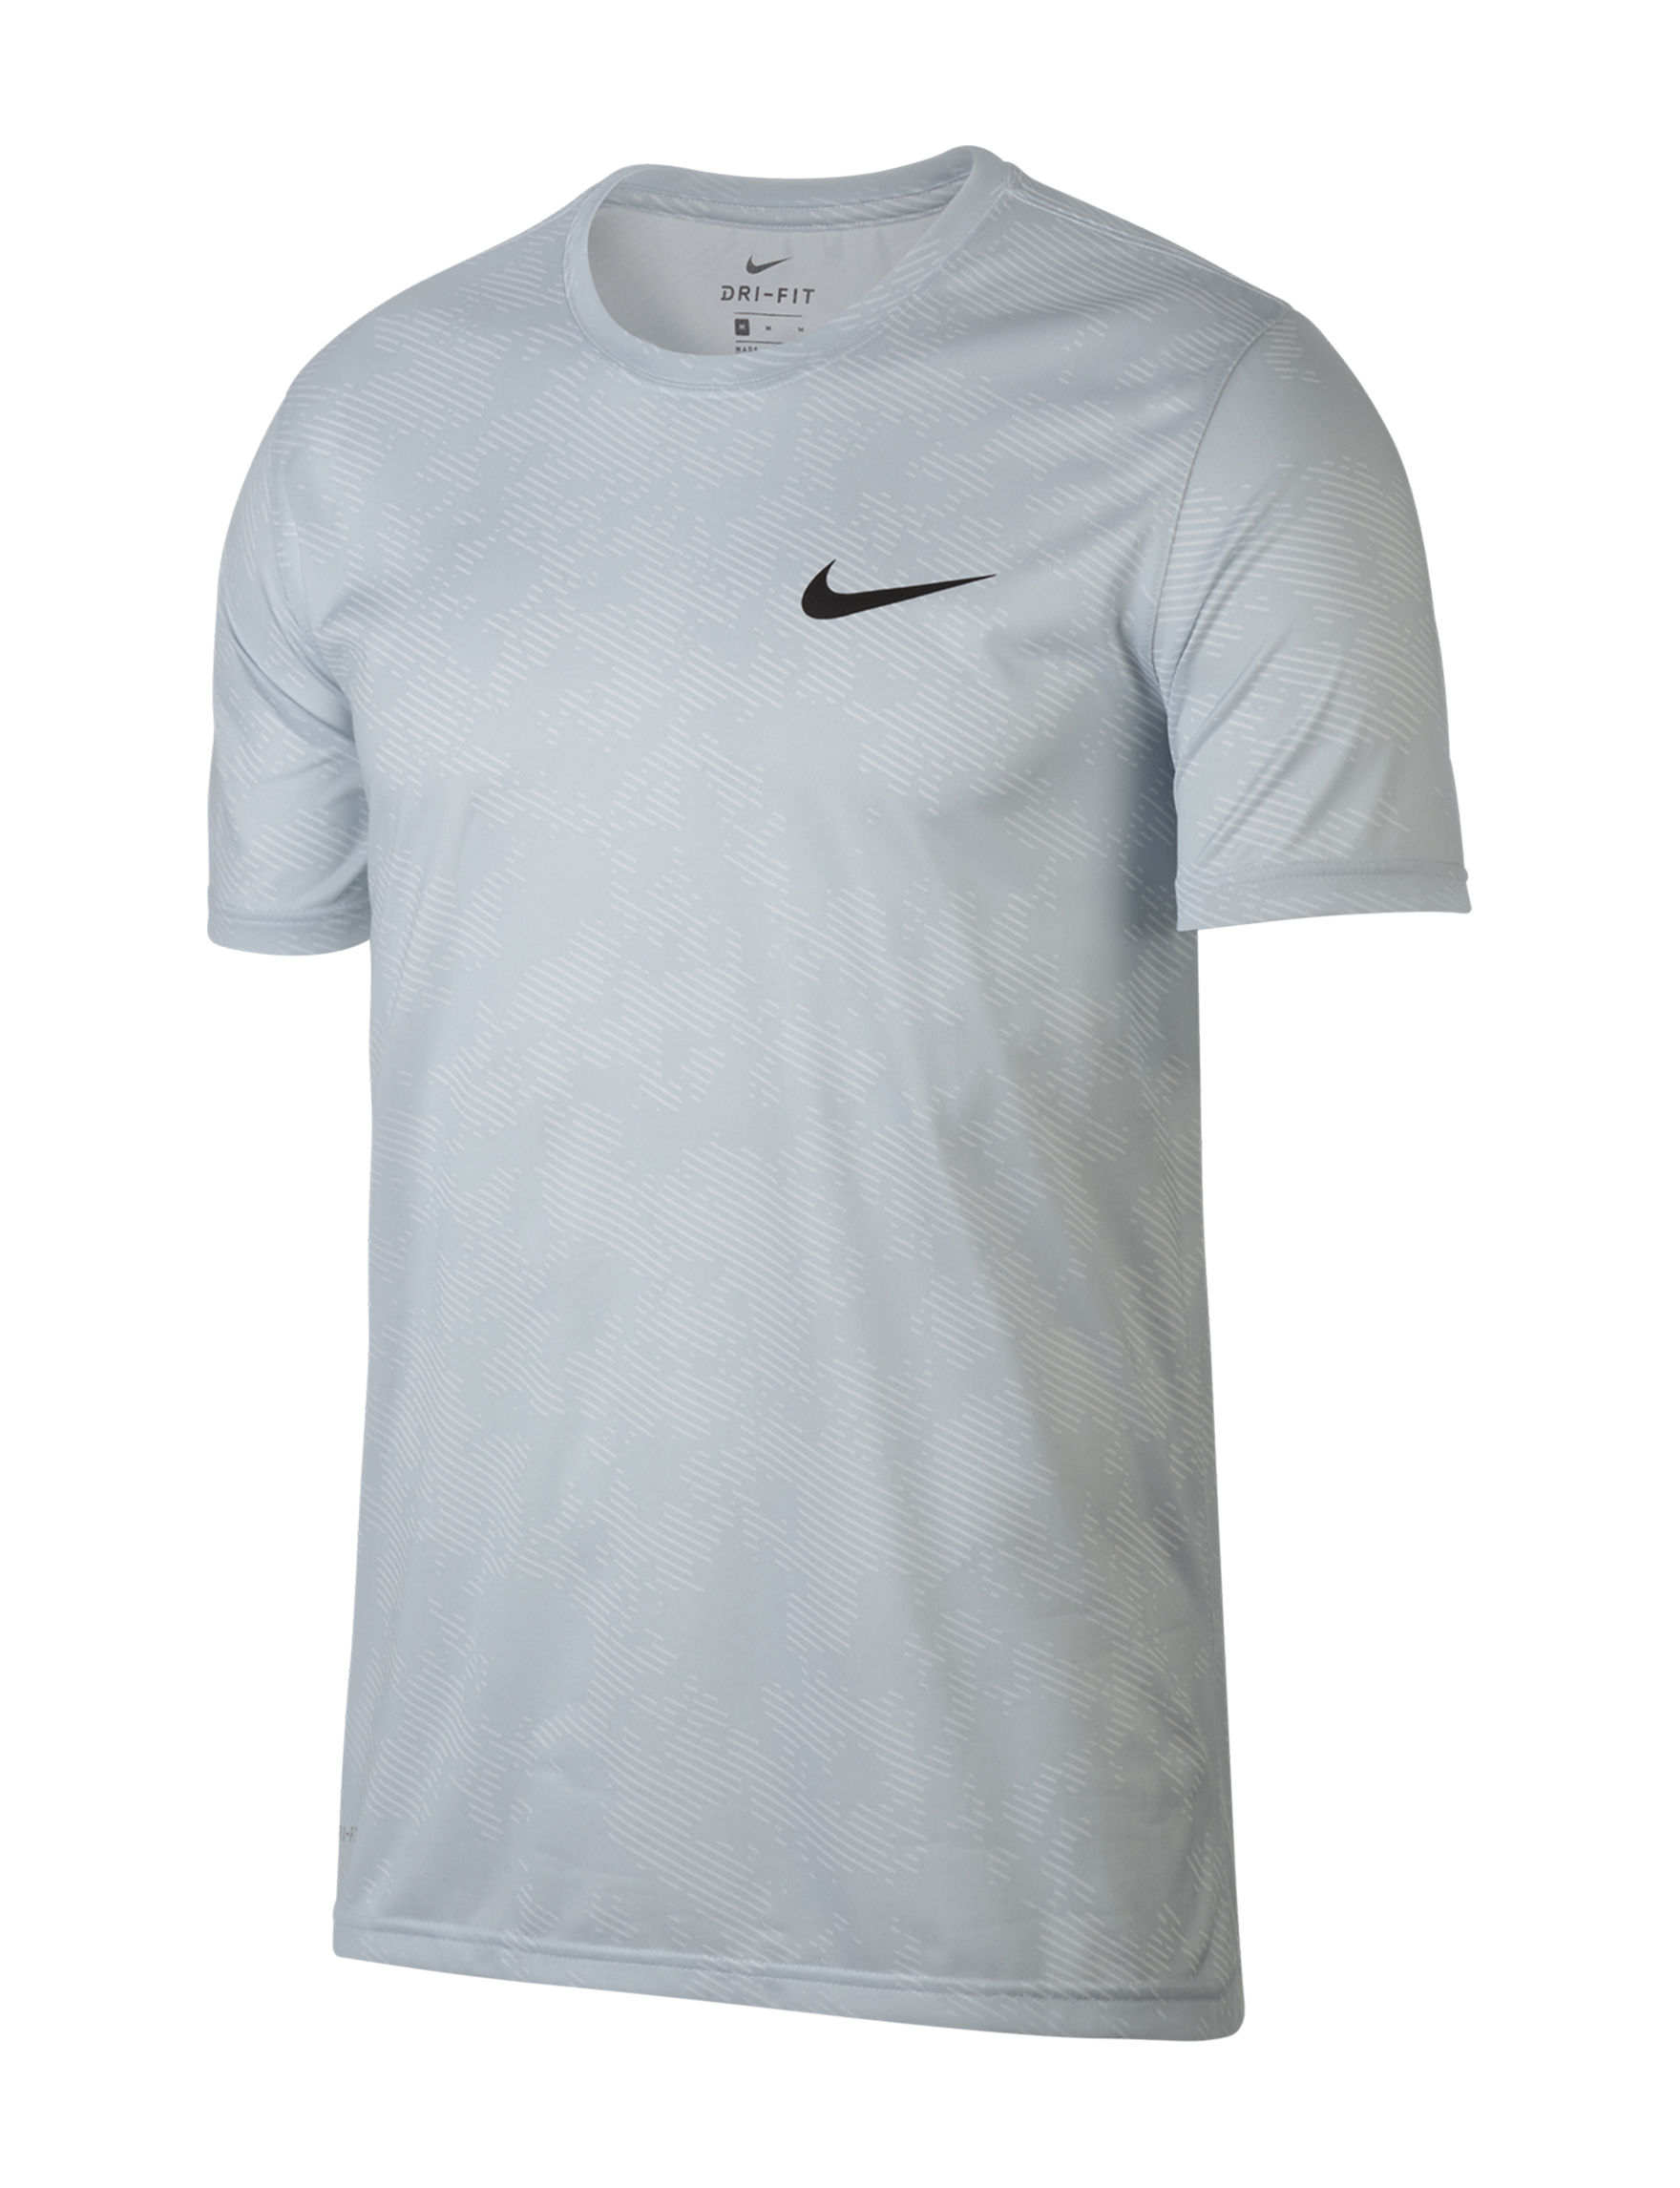 Nike White Tees & Tanks